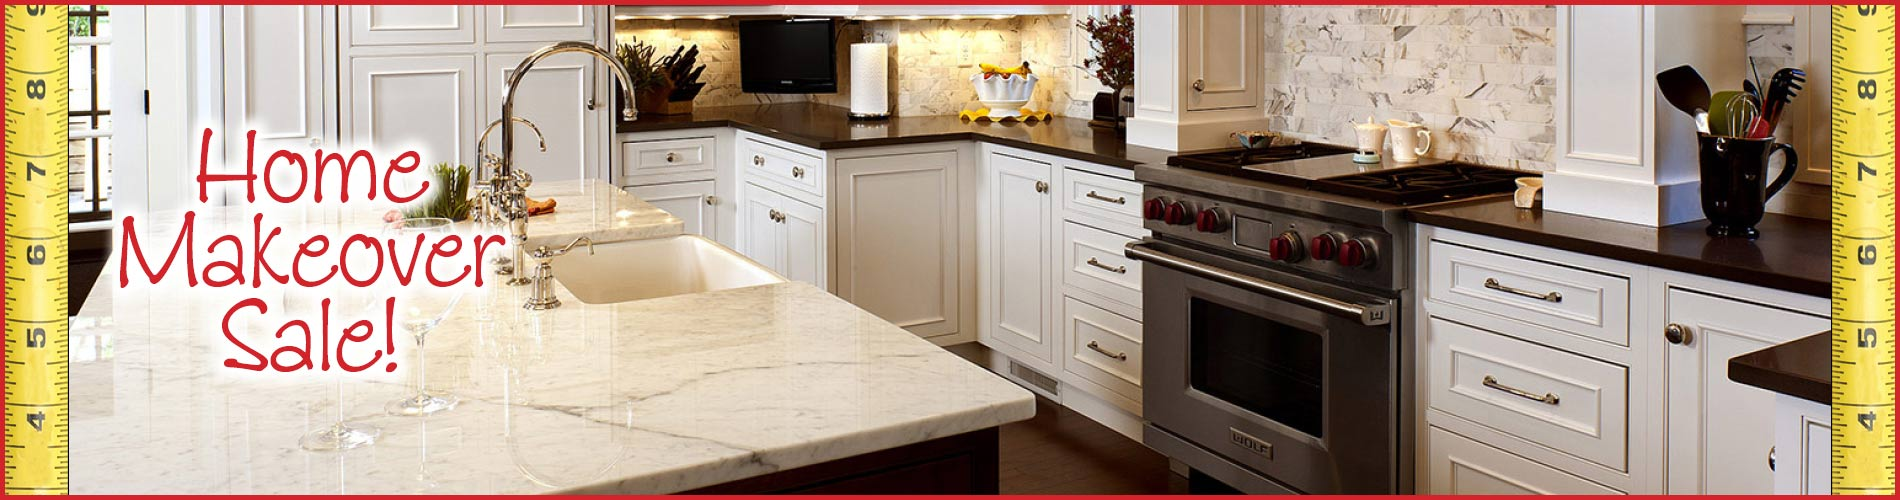 Save on all our Cabinetry this month - stop by one of our showrooms today!